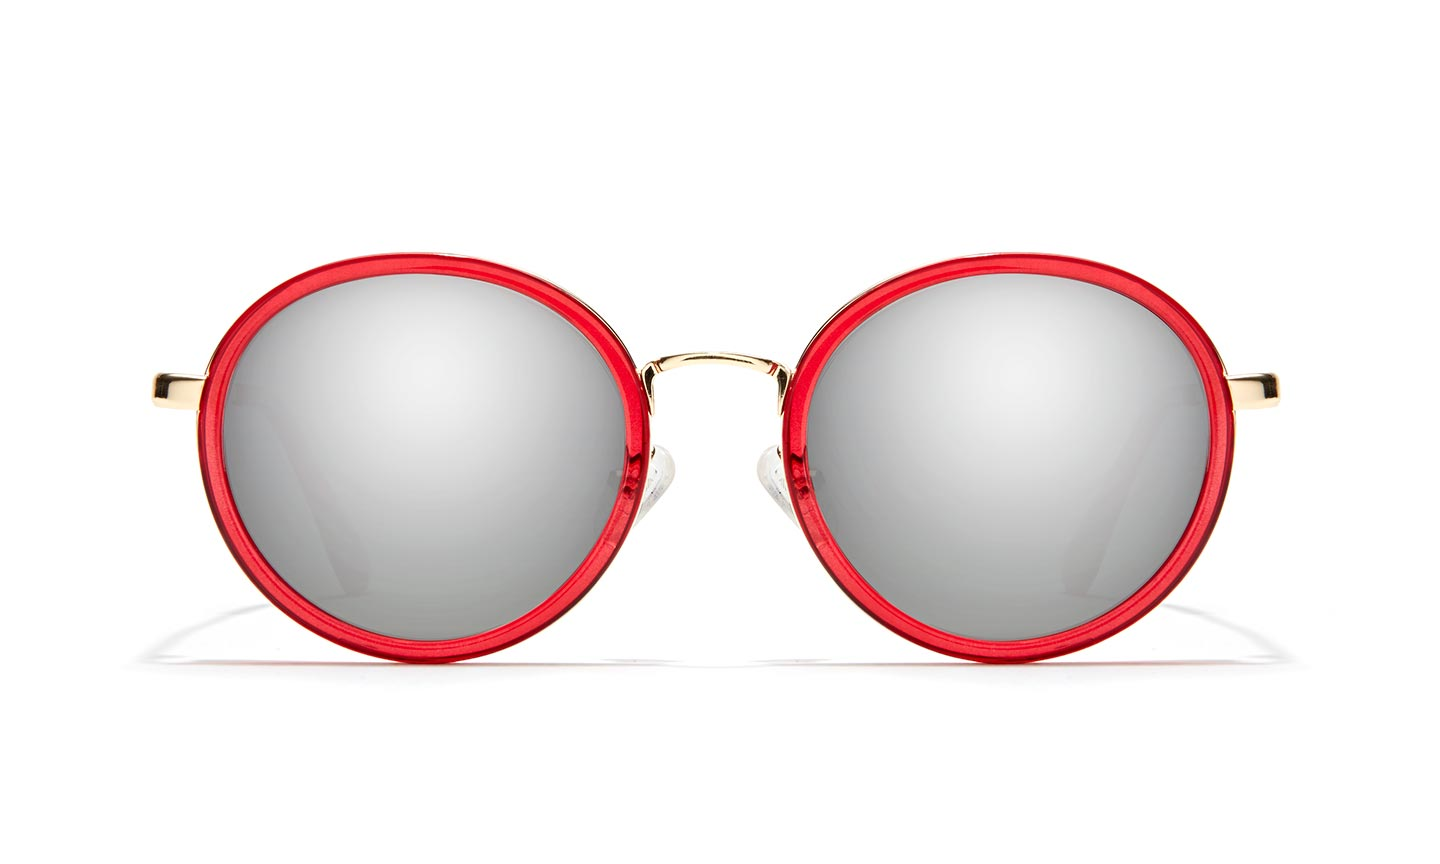 round-red-festival-glasses-1132018